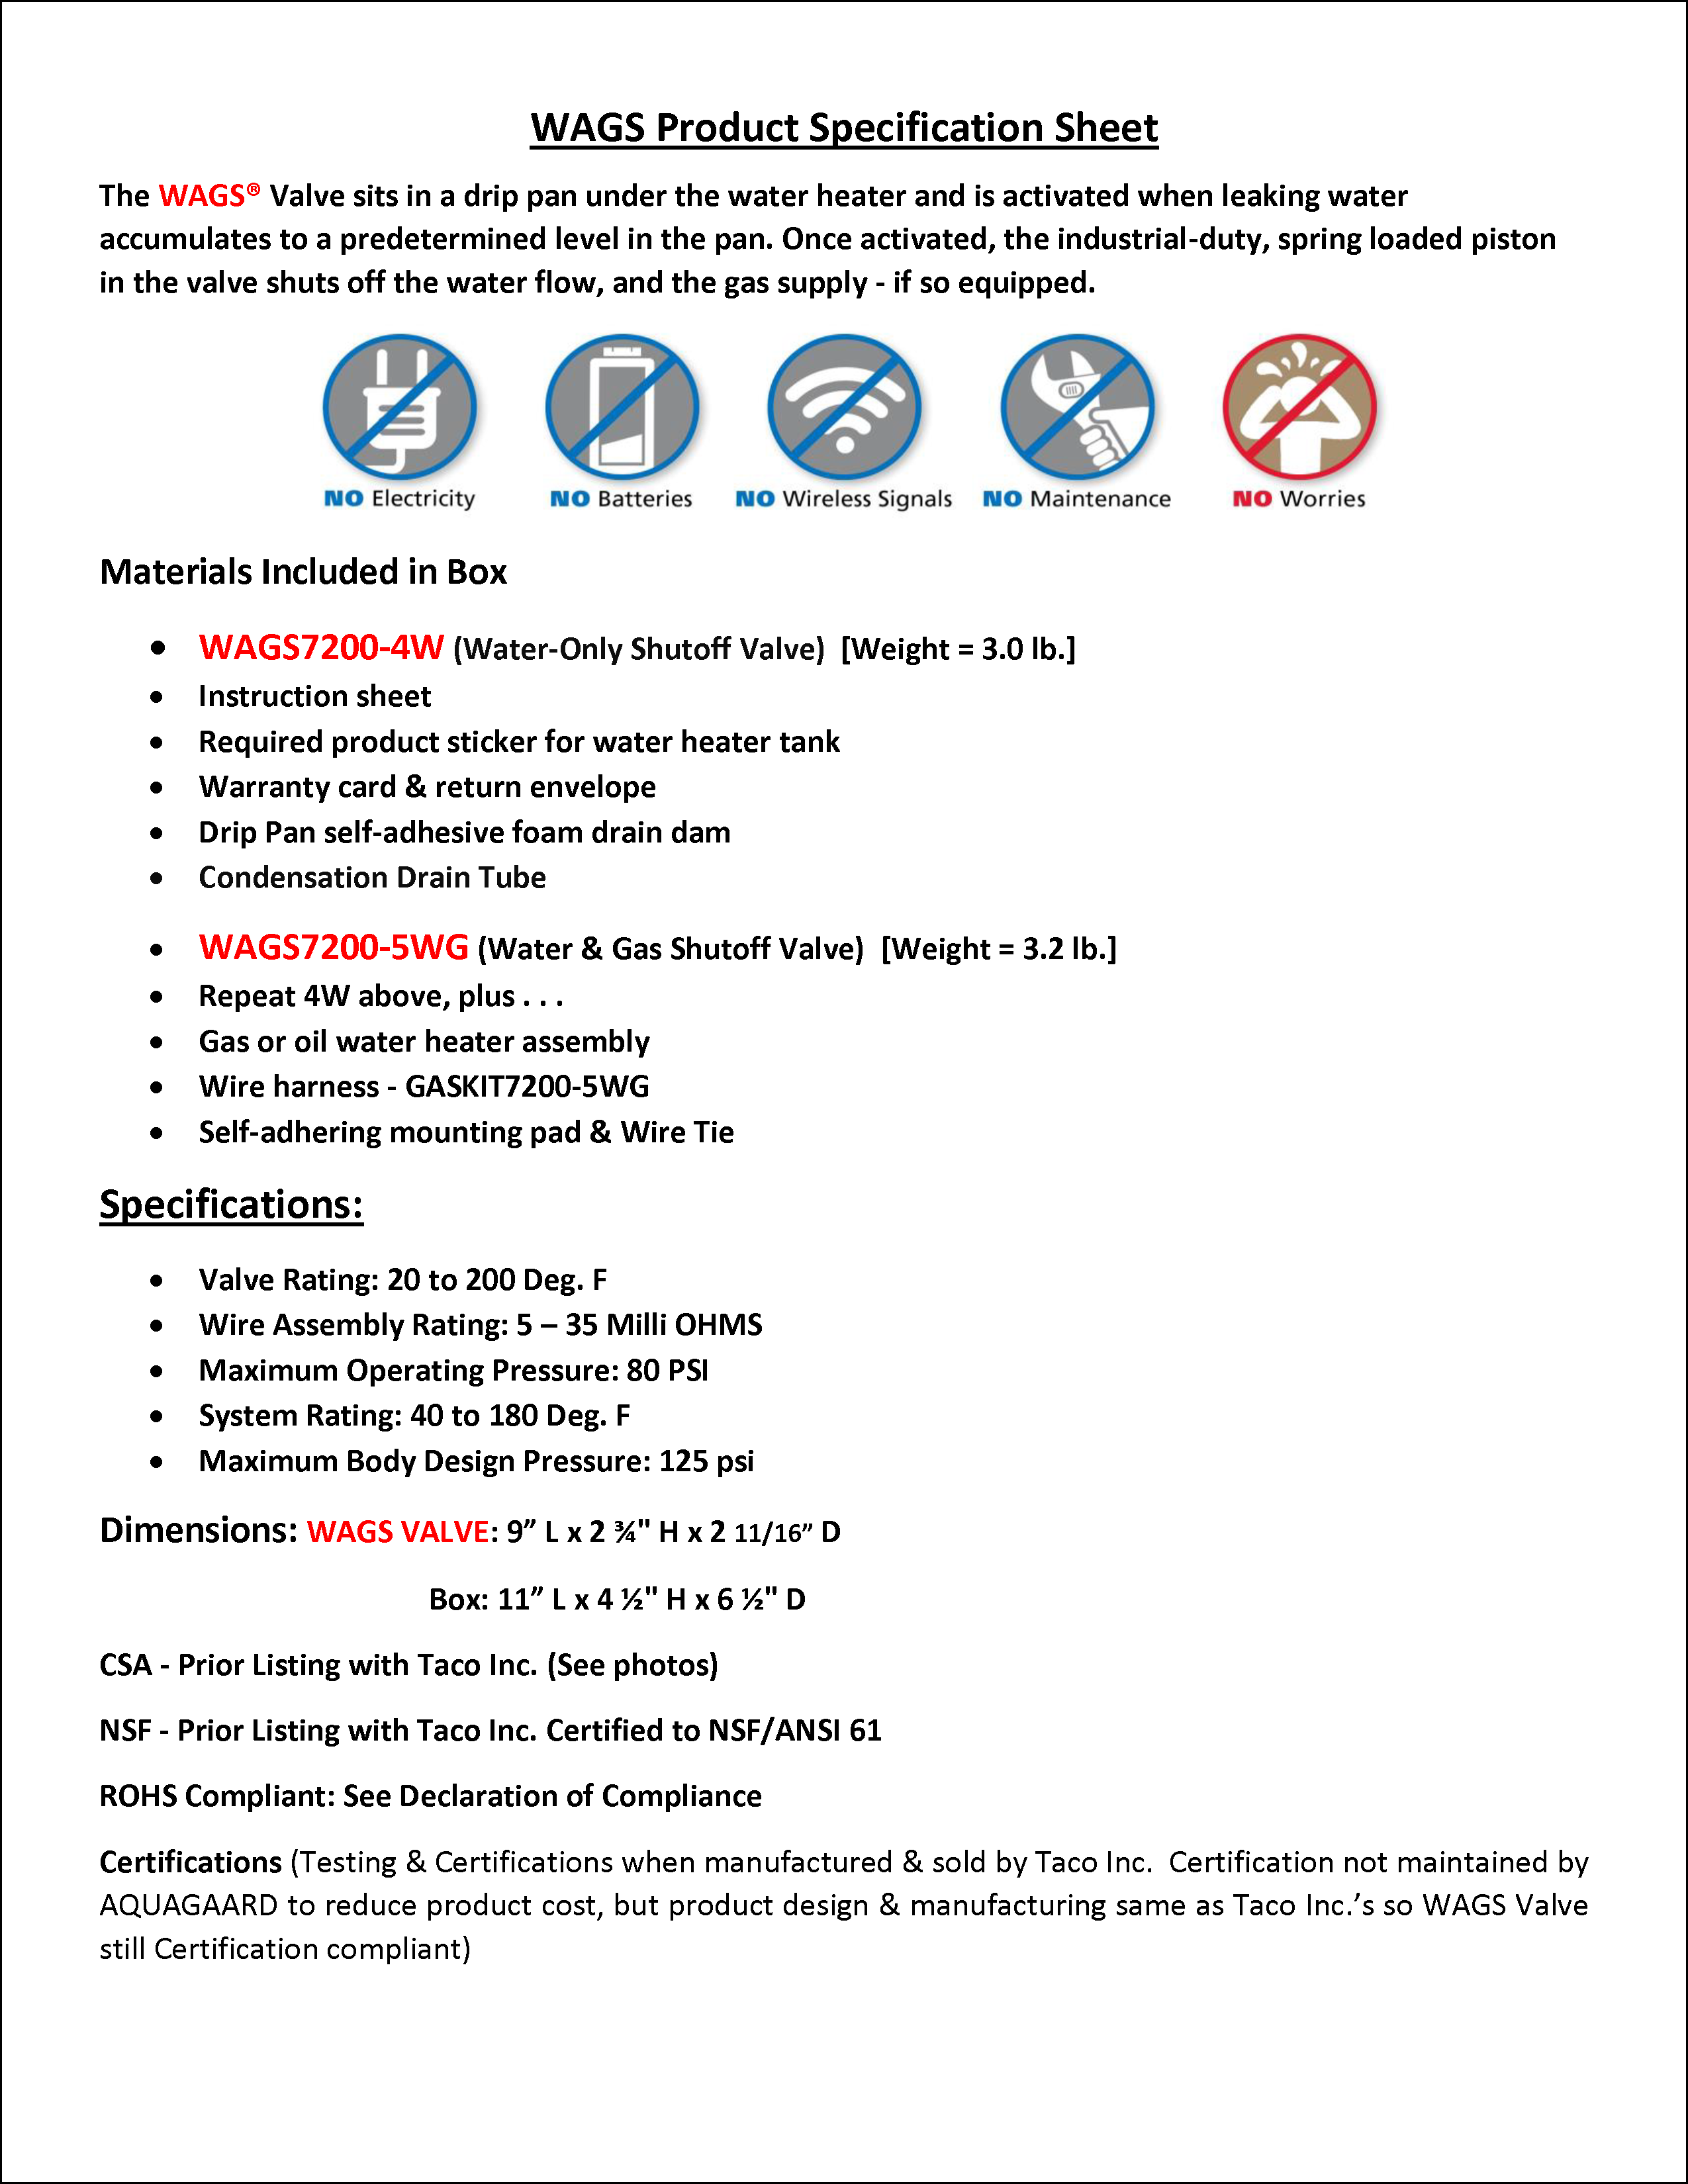 wags-product-specification-sheet-rev-1-2019.png